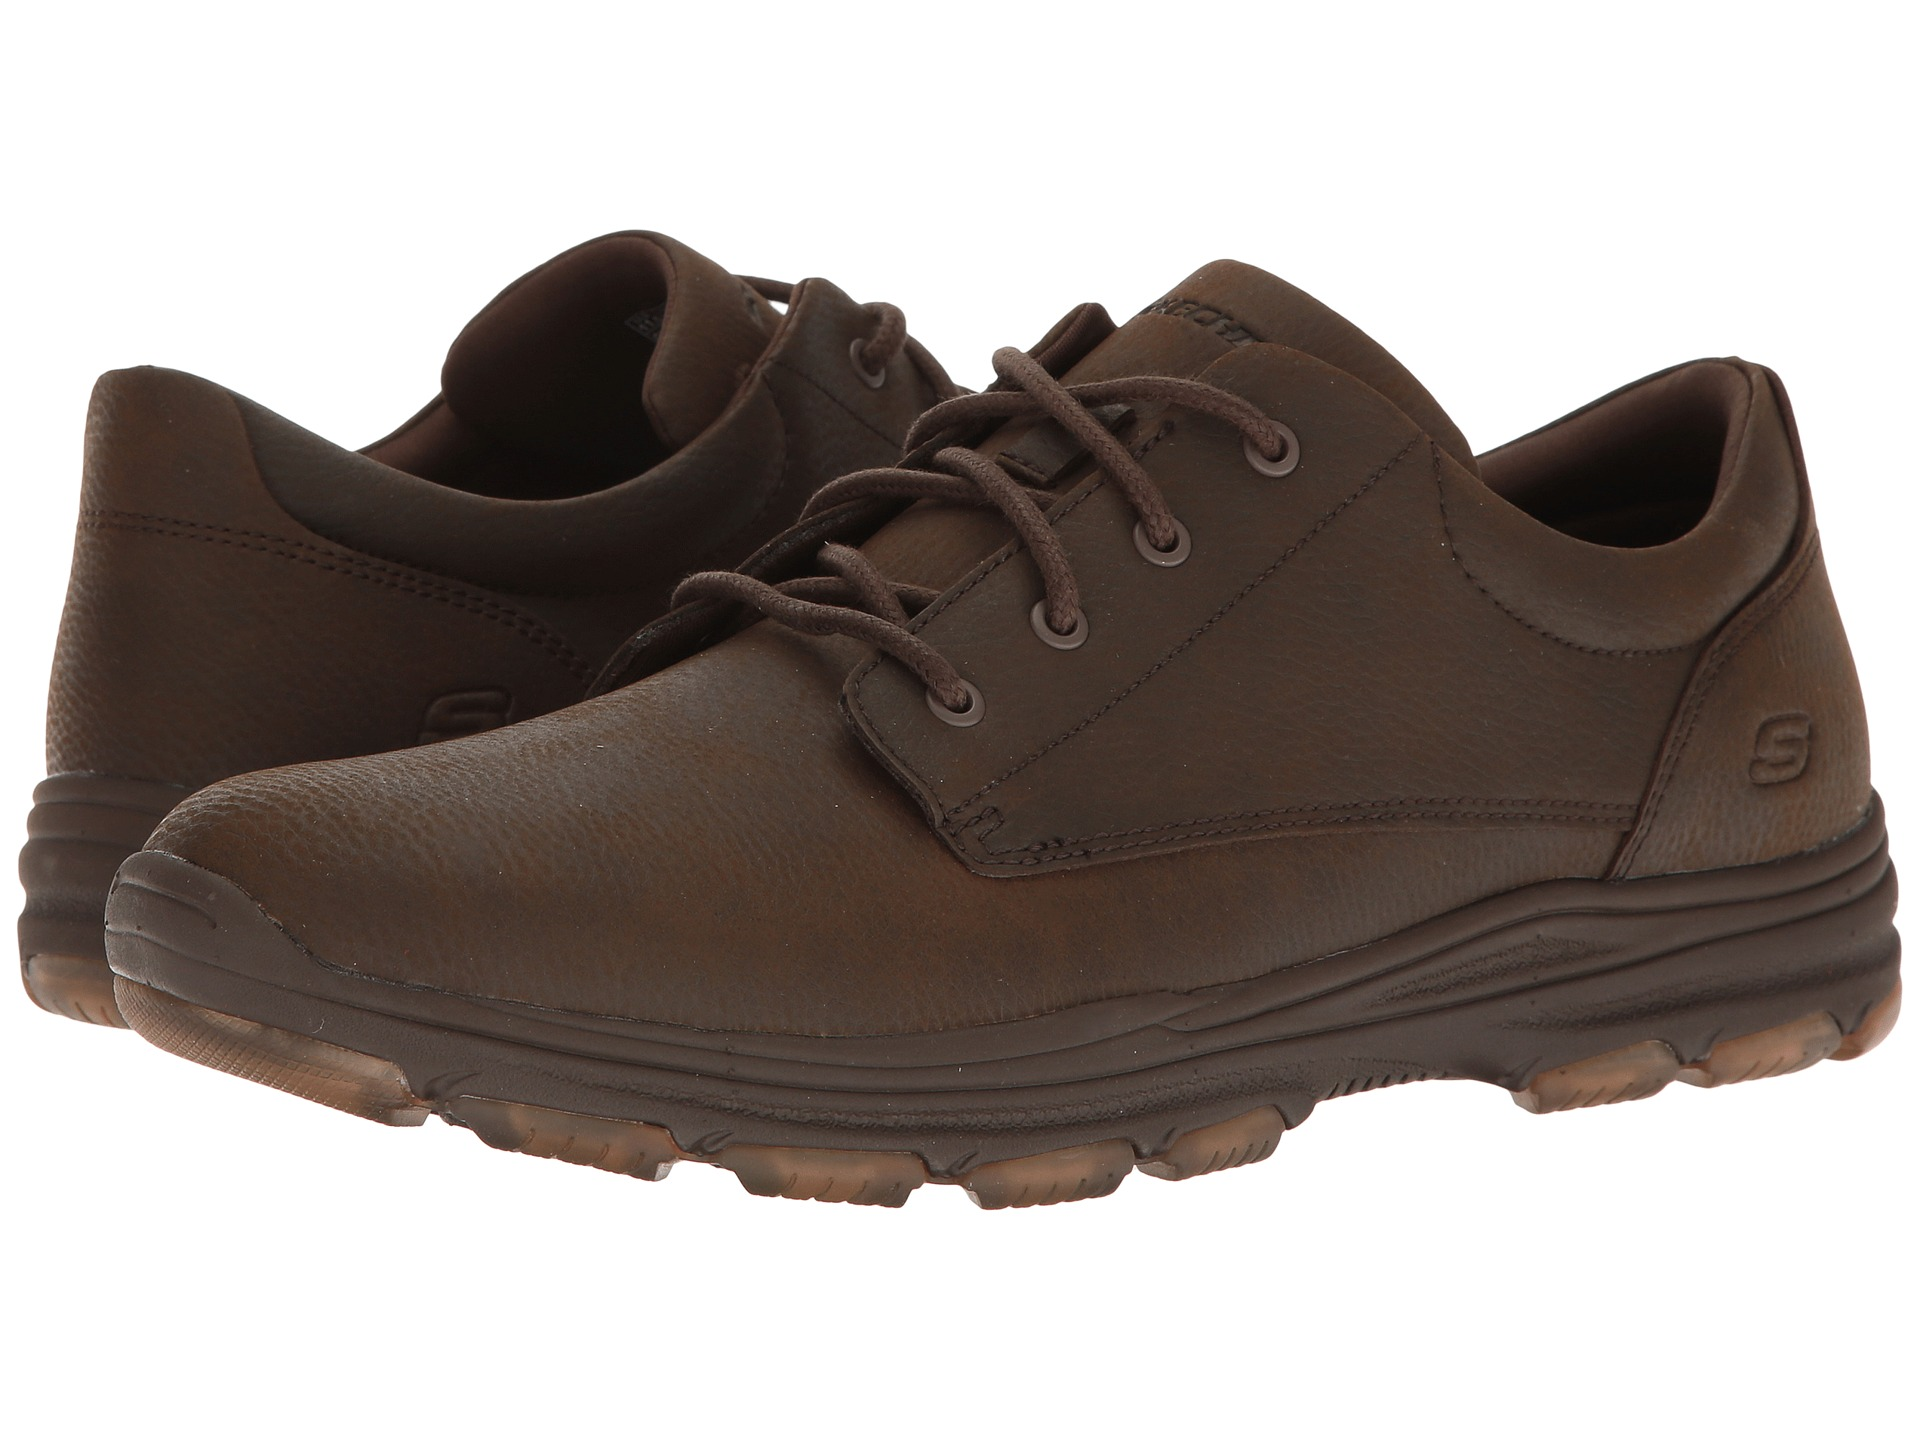 Shoes That Fit Modesto